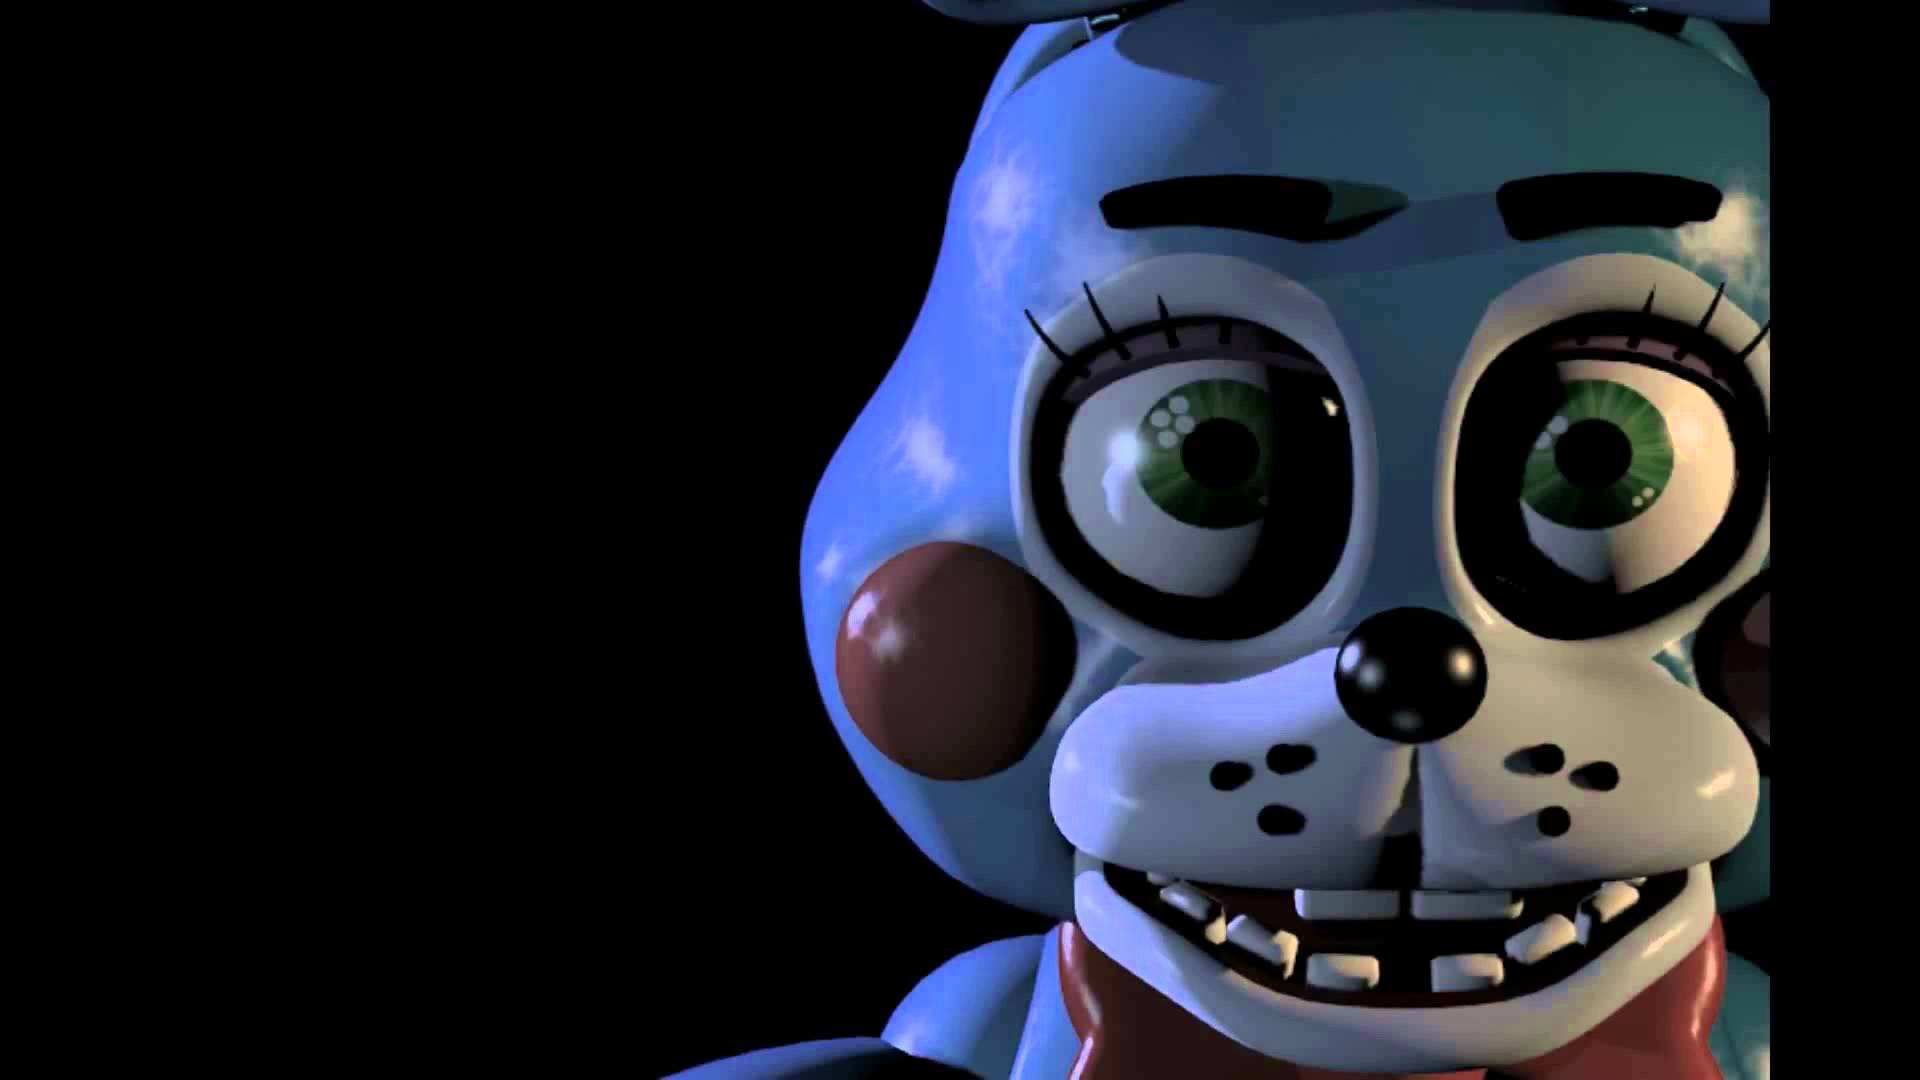 5 Nights At Freddy S Bunny 2256586 Hd Wallpaper Backgrounds